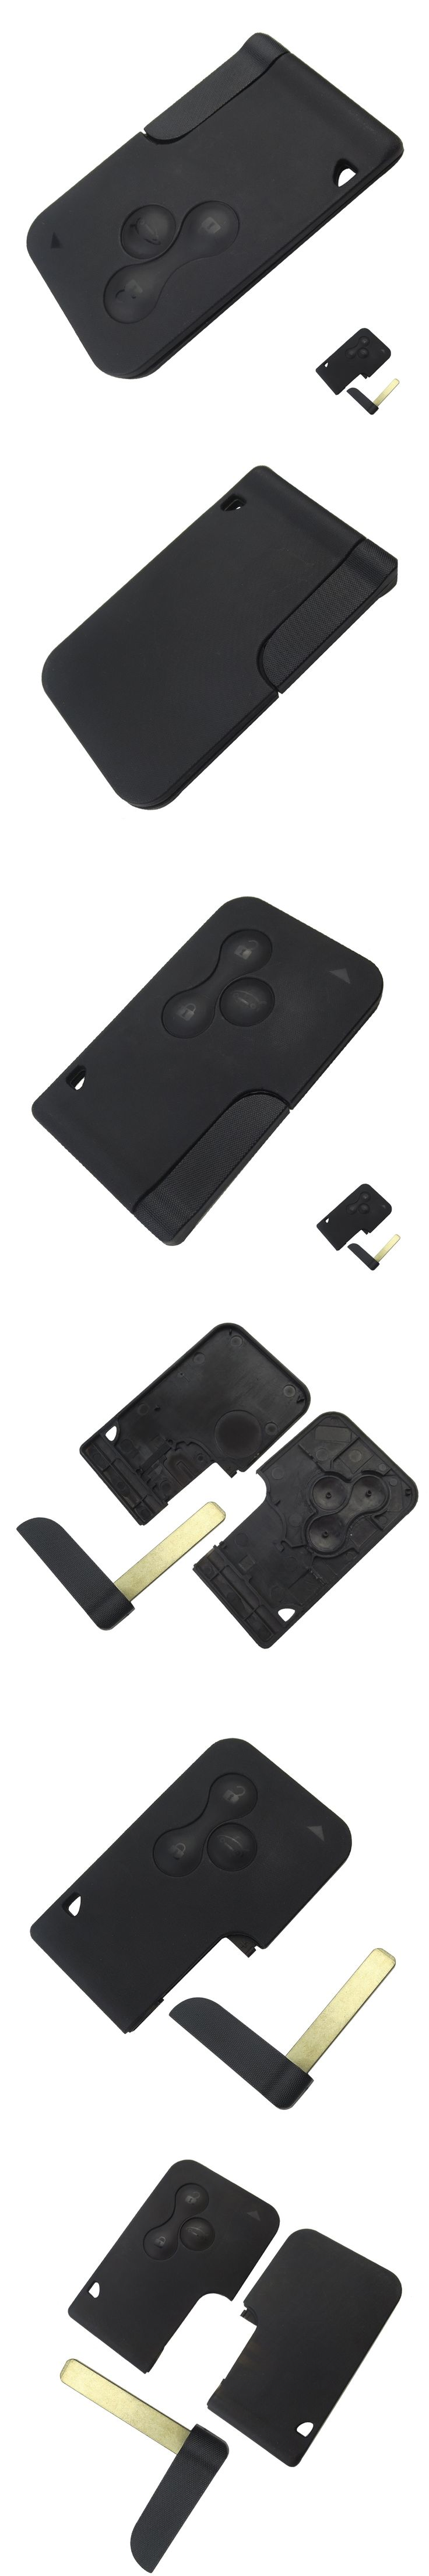 3 Button Smart Card For Renault Clio Logan Megane 2 3 Koleos Scenic Card Case Black Car Key Fob Shell with Small Key Uncut Blade